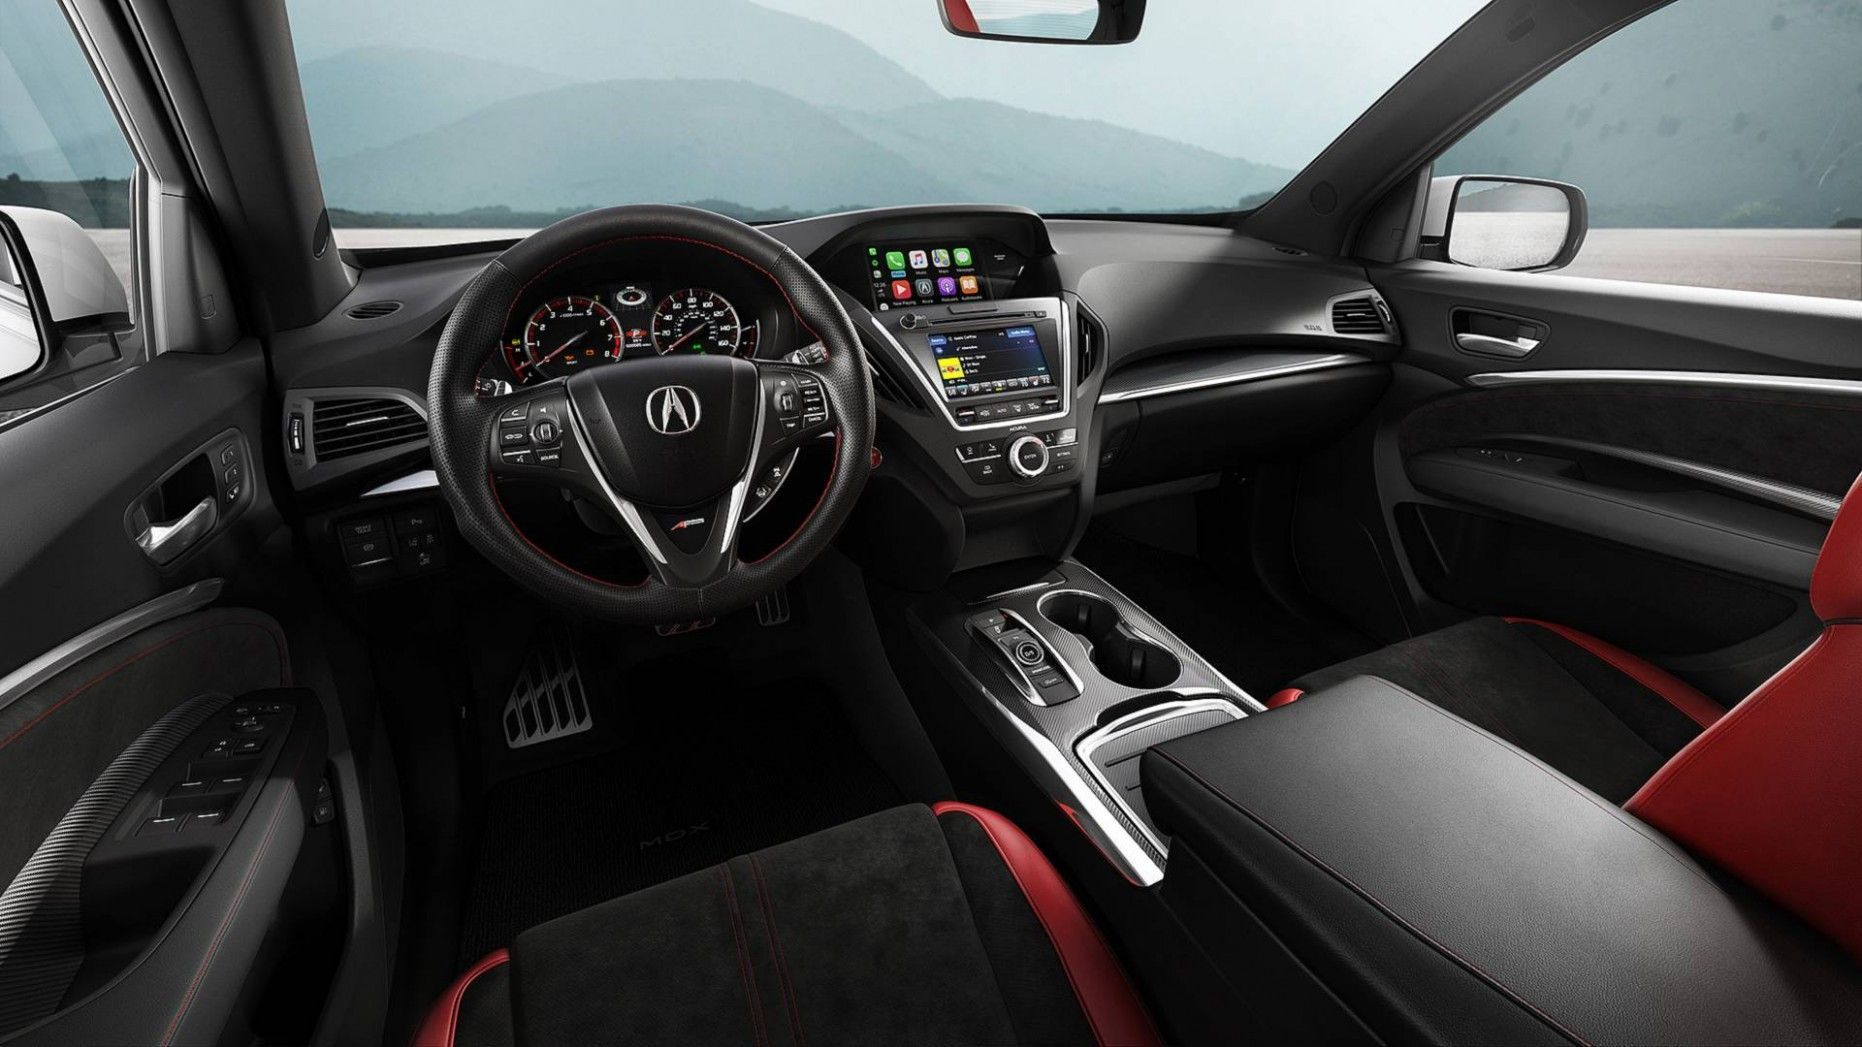 Acura Suv 2020 Price Specs And Review Periodic Vehicle Maintenance Which Is Acura Maintenance Periodic Price Rev En 2020 Service Auto Reparation Auto